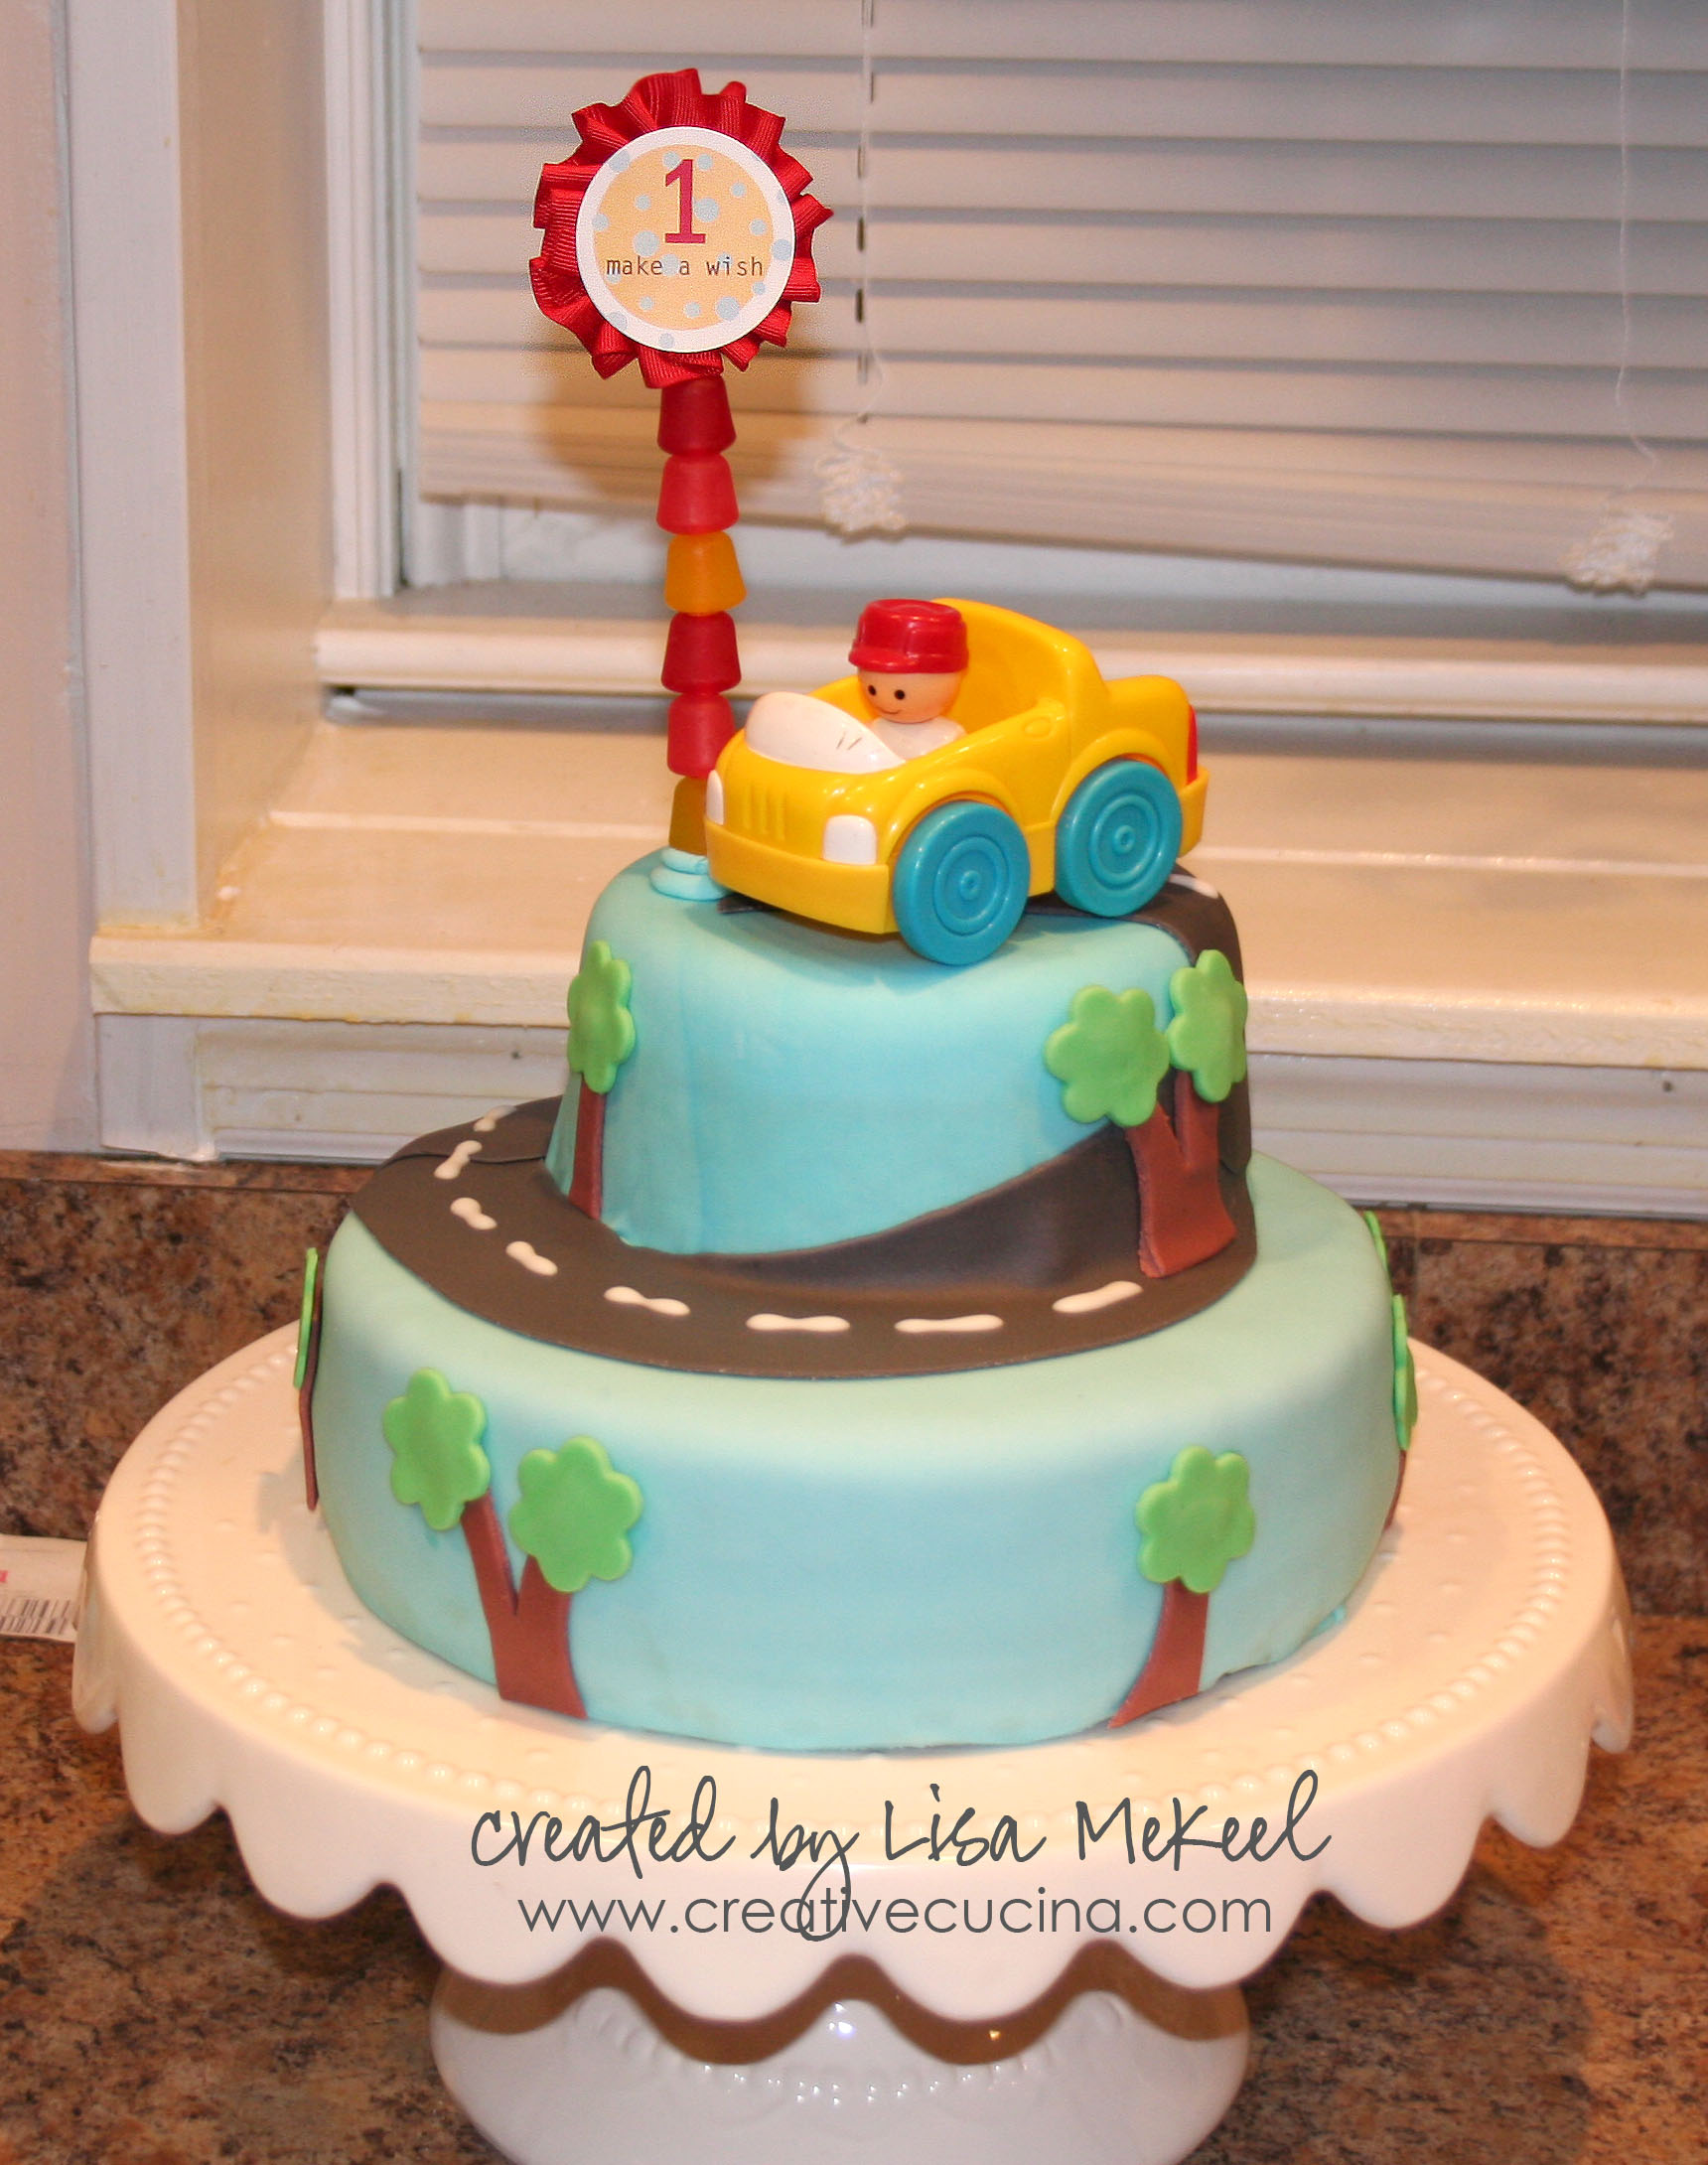 Car Cake Designs For Birthday Boy : 1st Birthday Boy Car Cake Creative Cucina